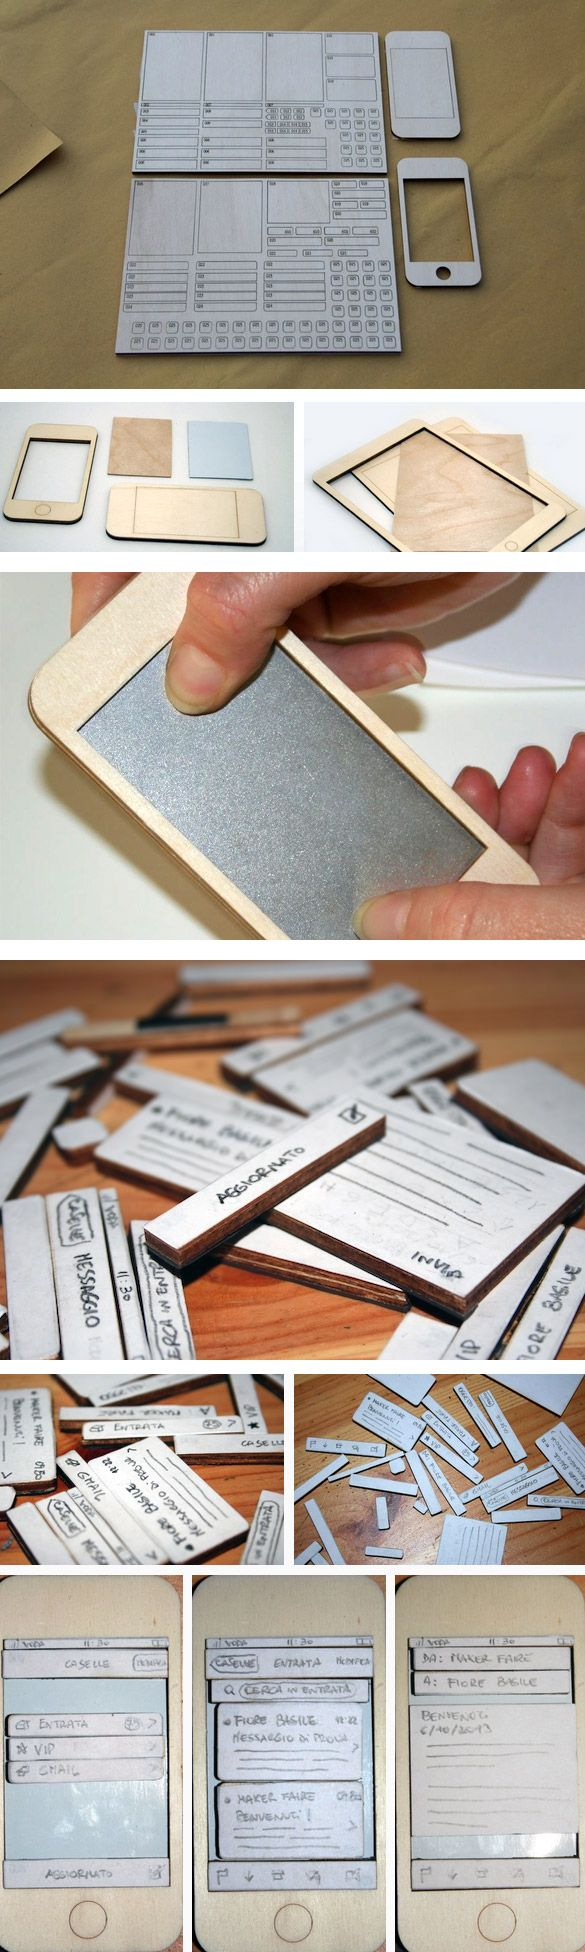 design & human -- wooden interface prototyping tool